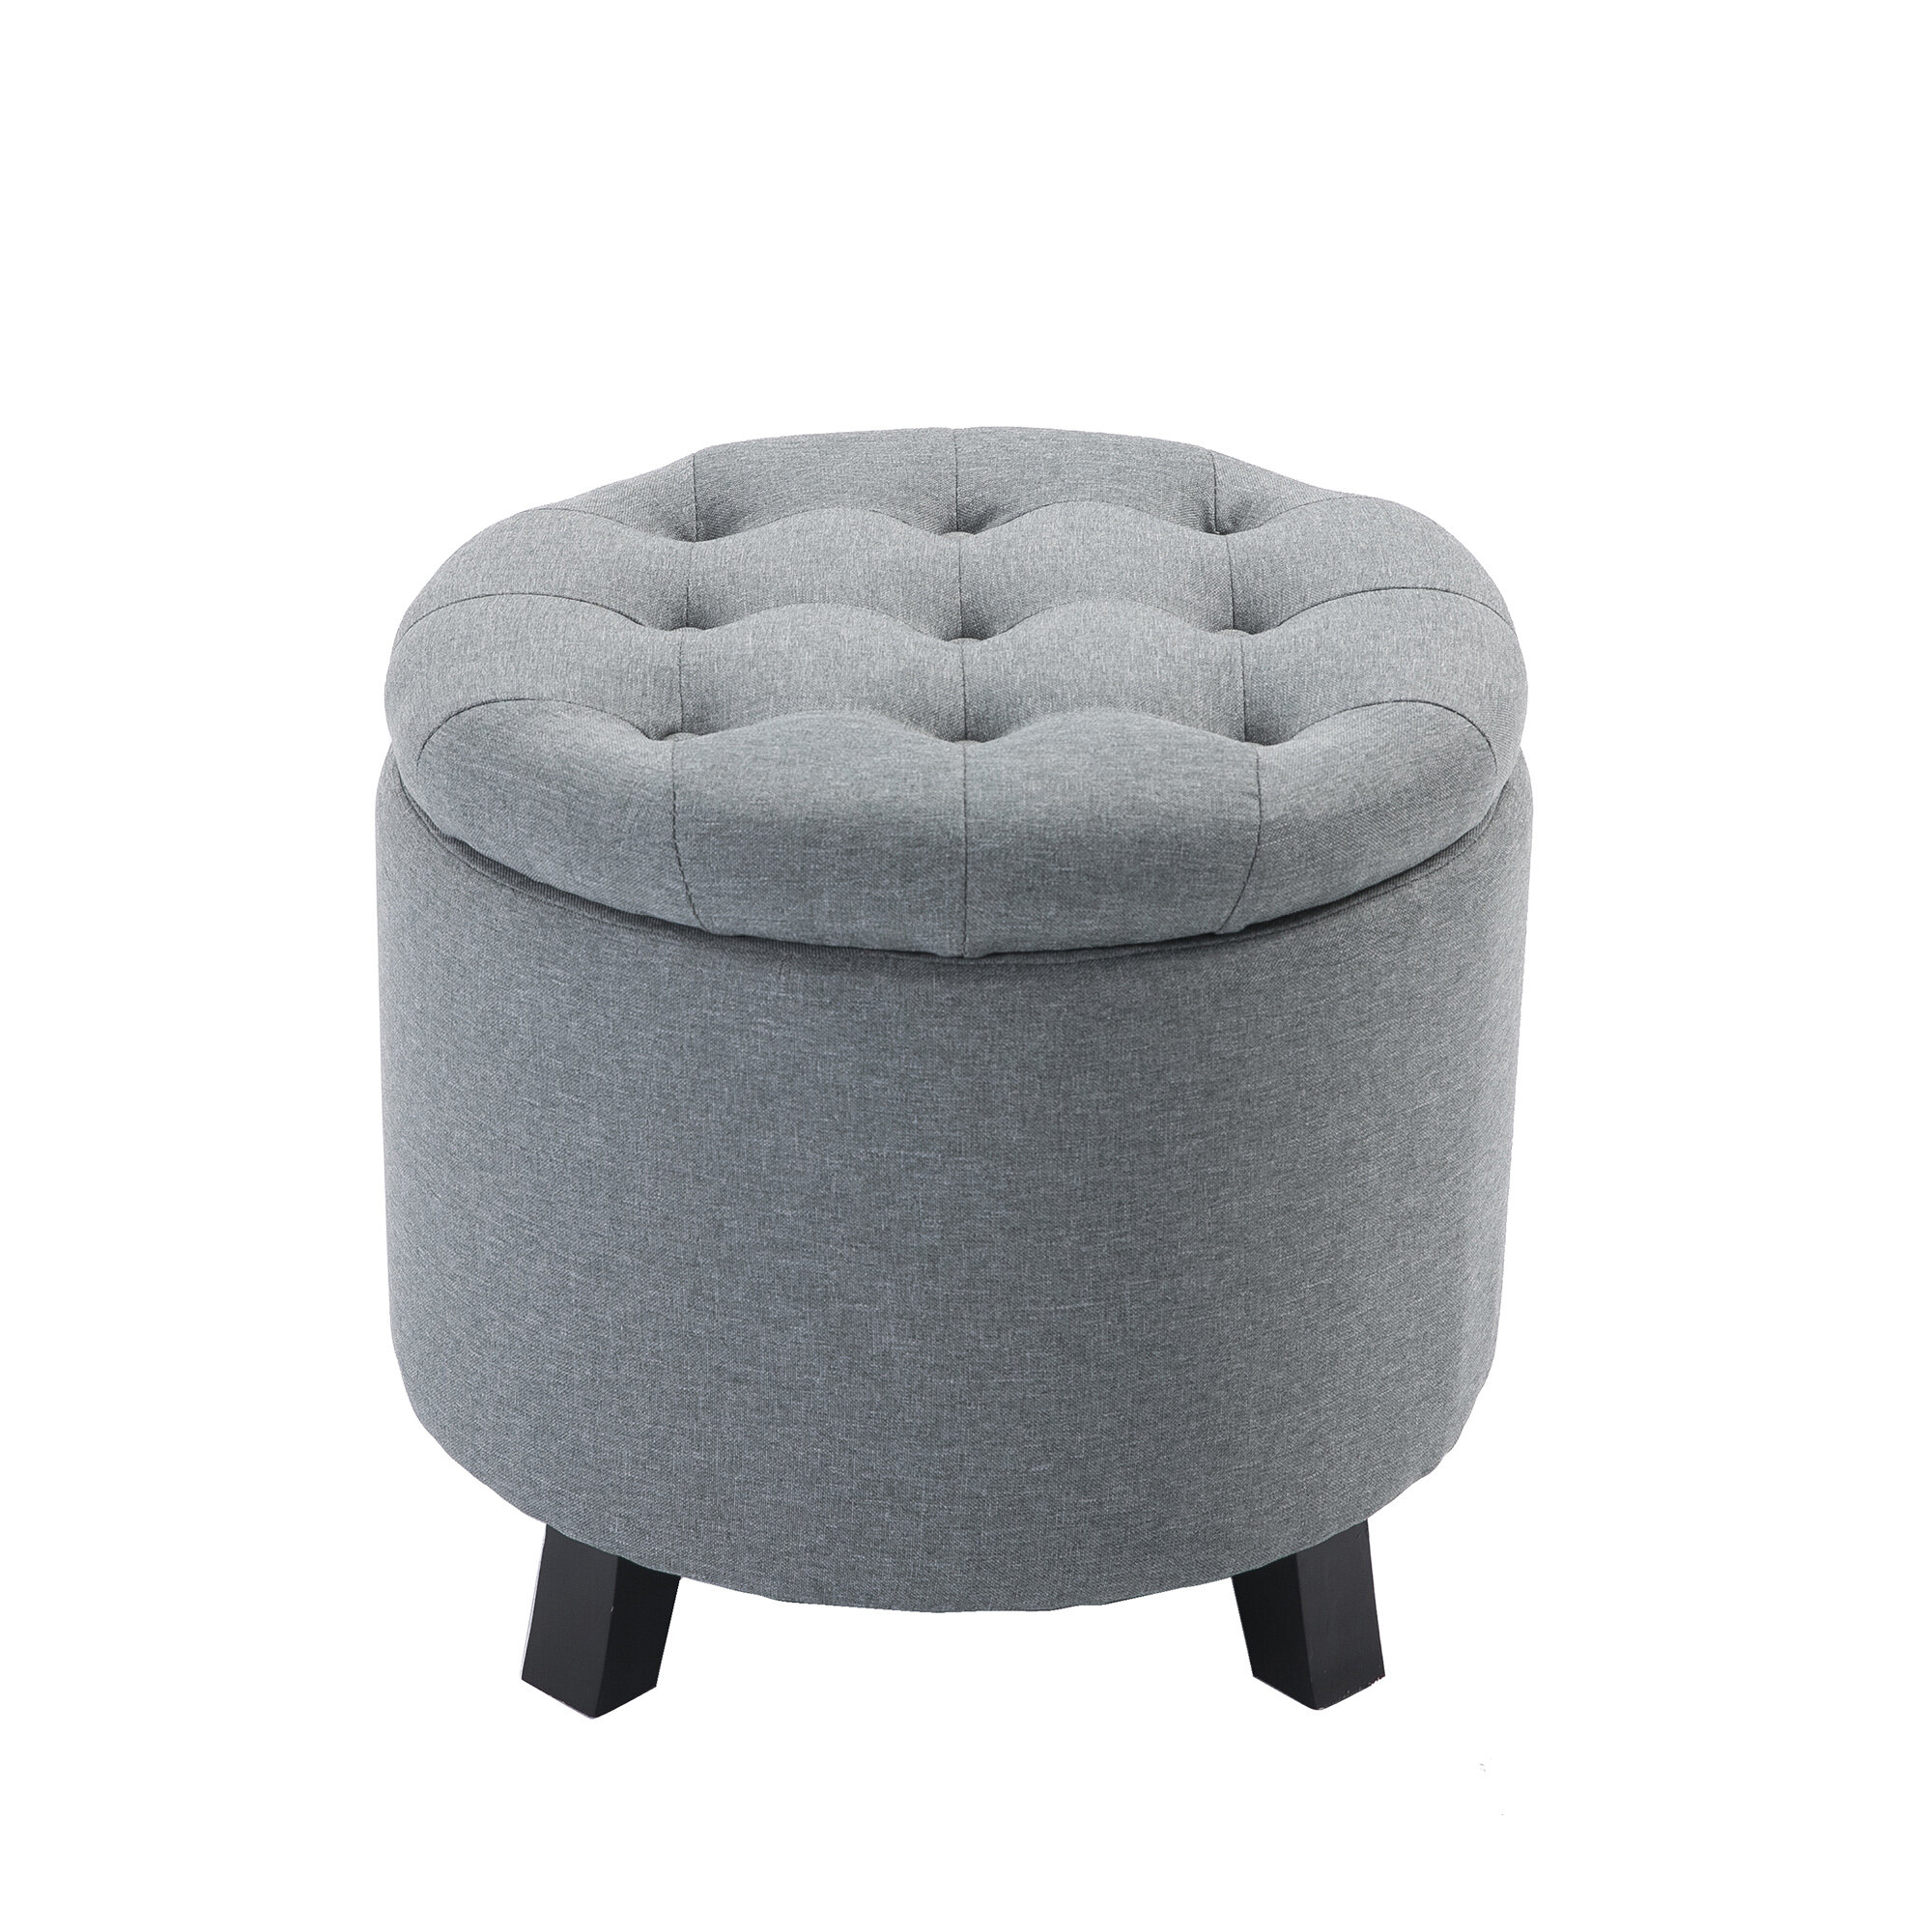 Cool Velasco Tufted Storage Ottoman Ibusinesslaw Wood Chair Design Ideas Ibusinesslaworg